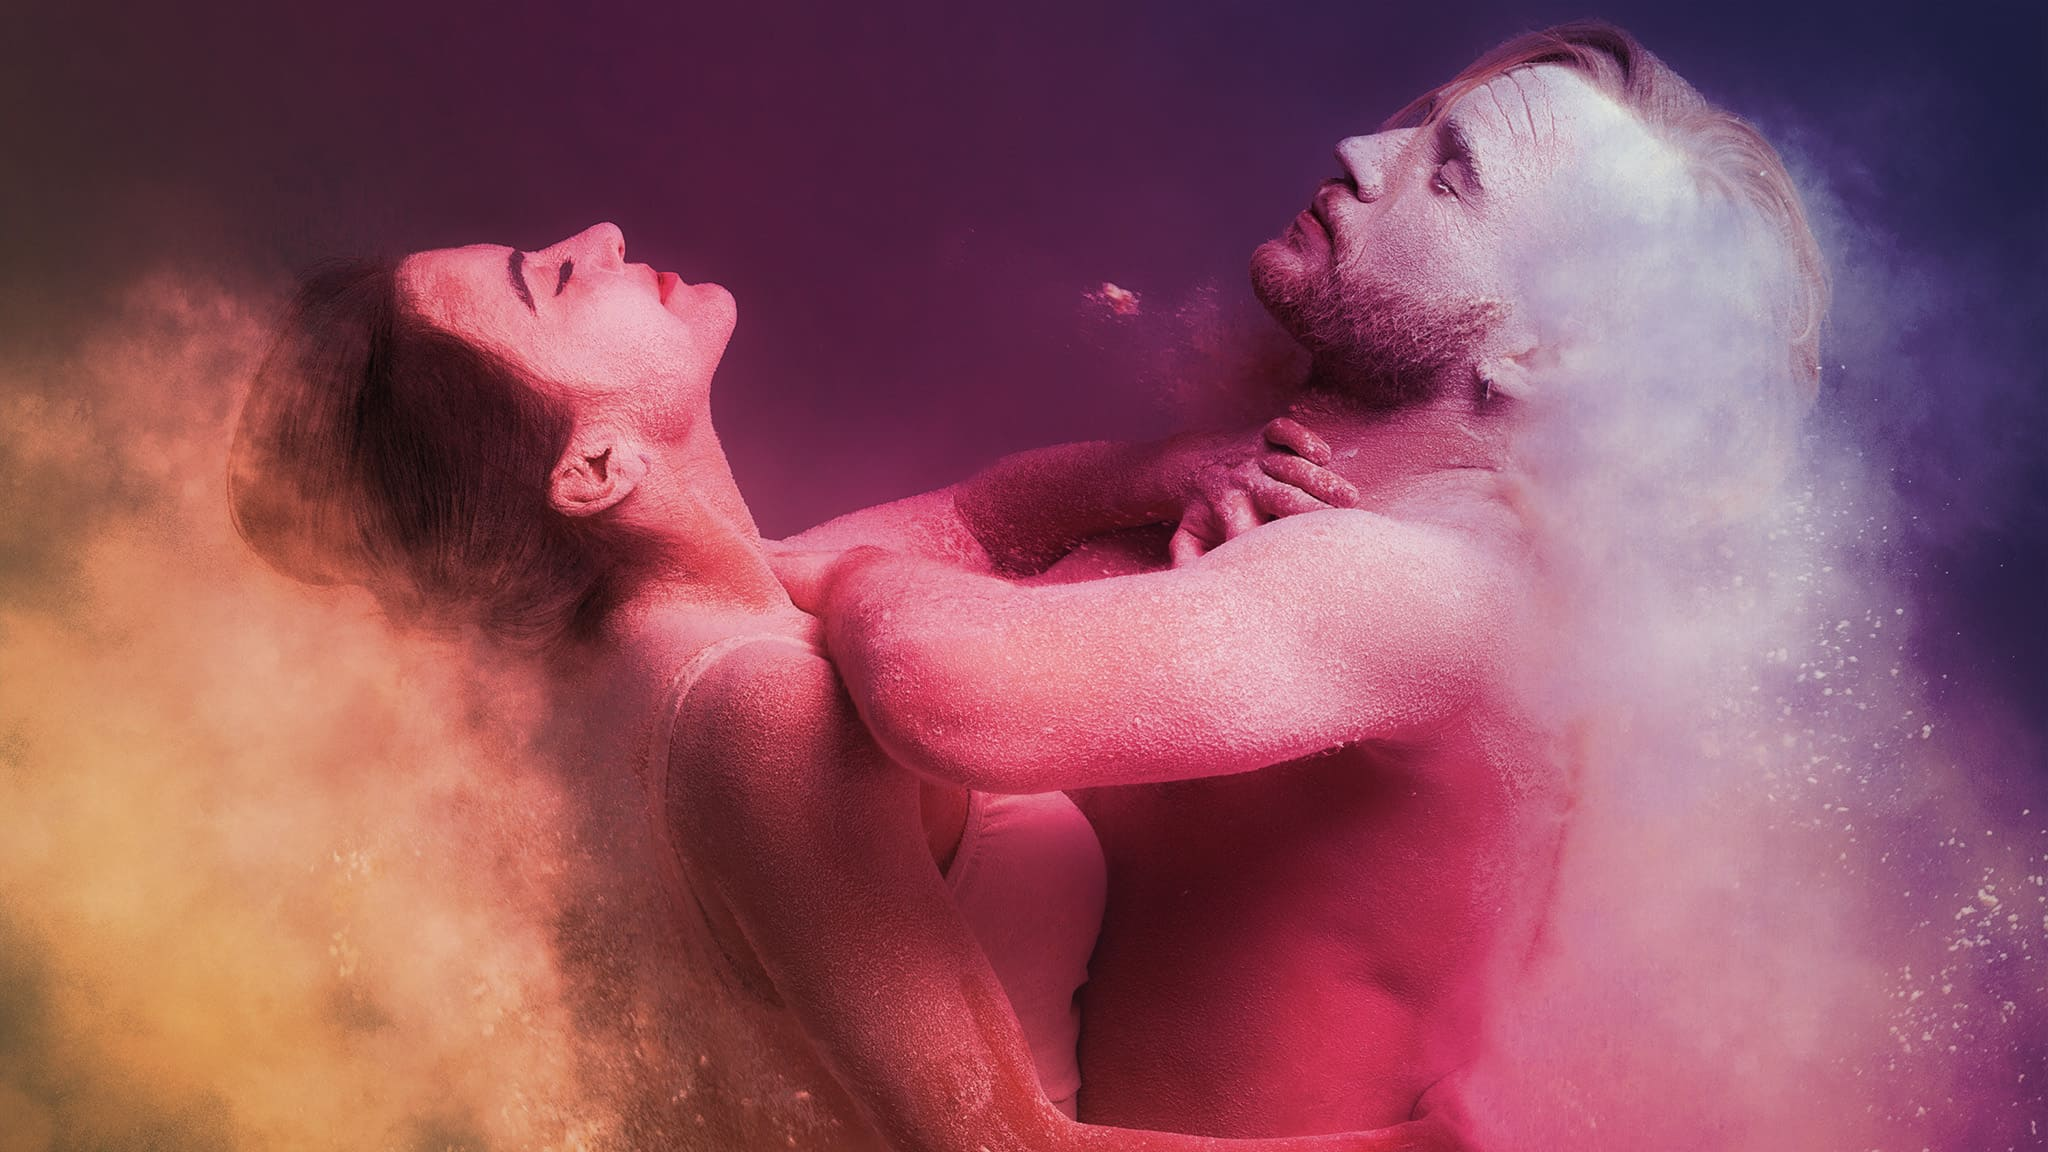 Close Up Photo Of Dancers In Colorful Dust, Passion Concept